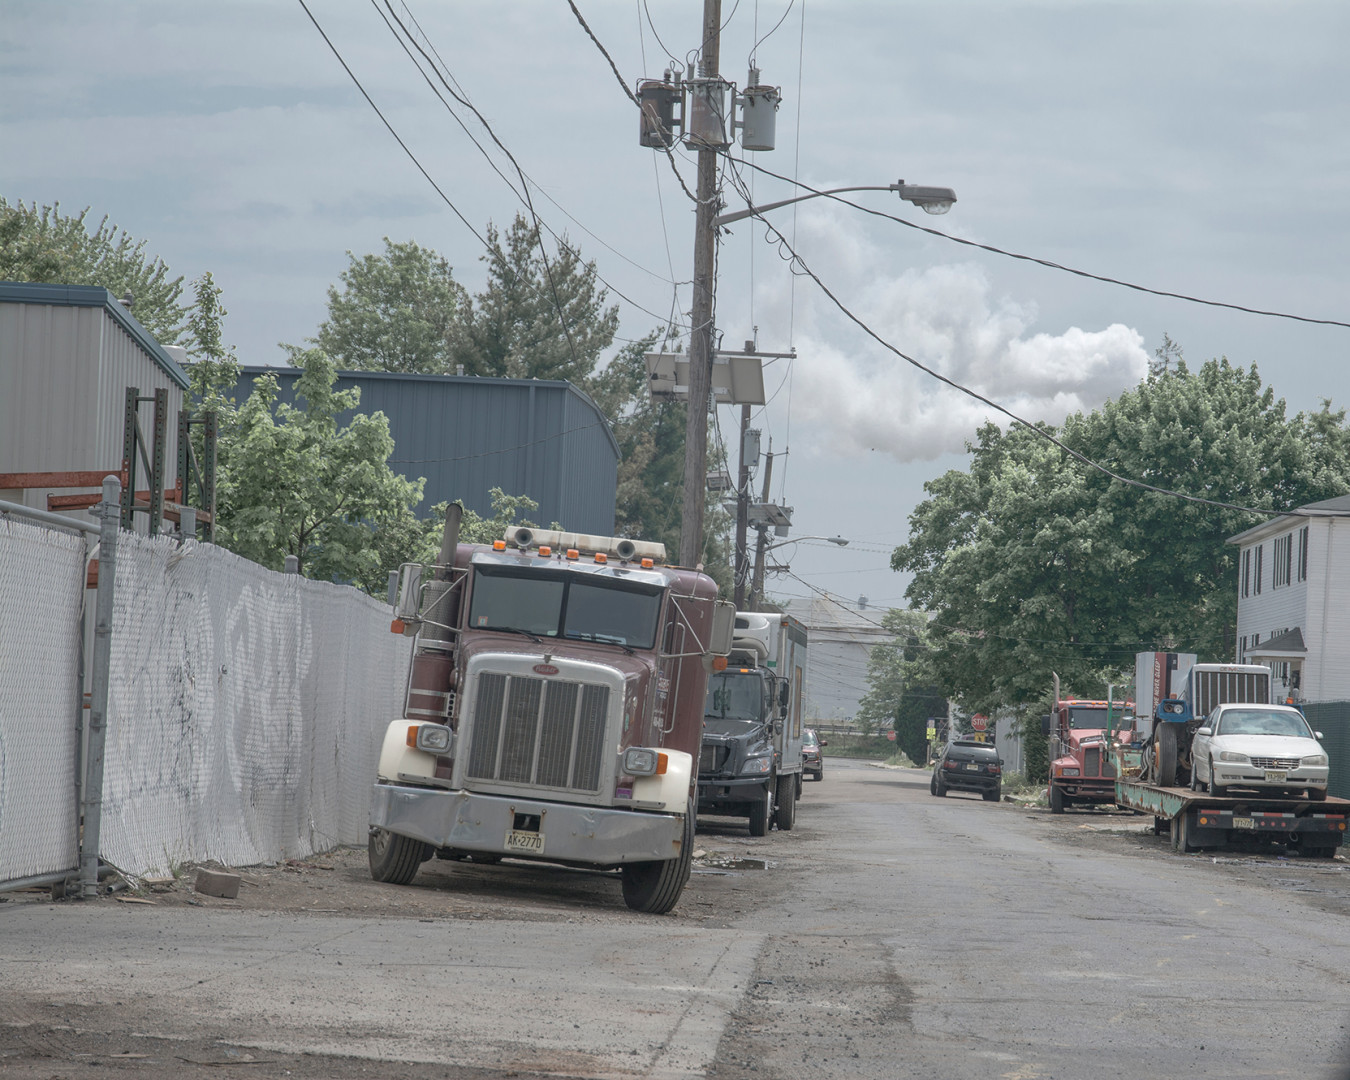 Trucks in the Alley